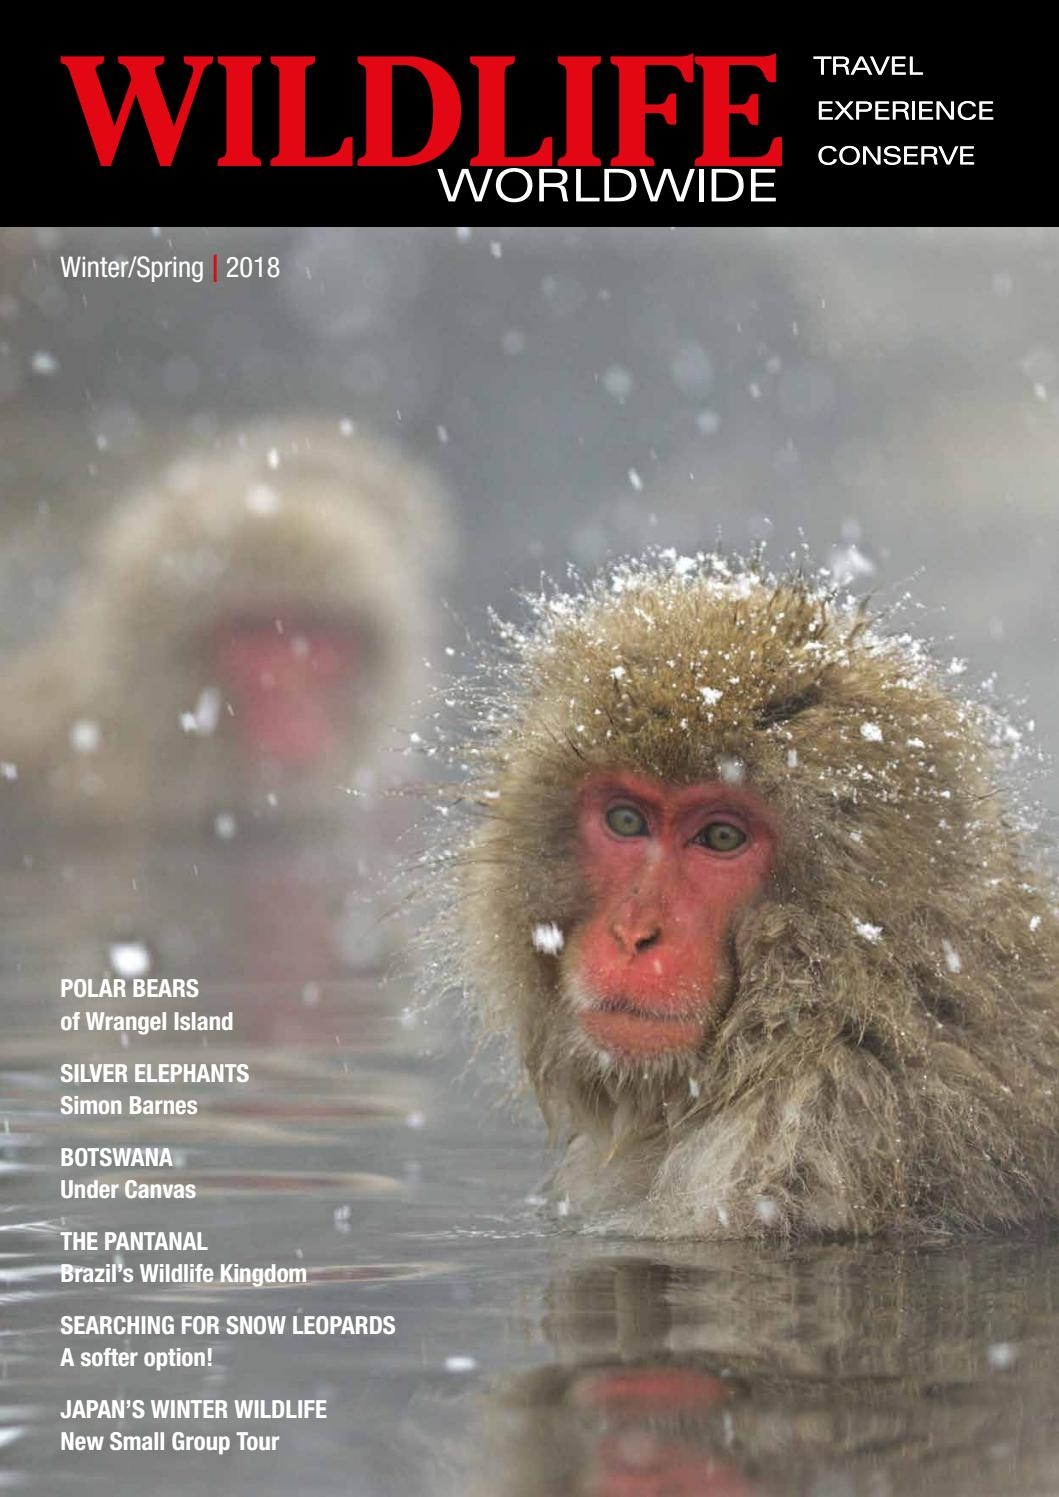 Wildlife Worldwide Brochure Winter /Spring 2018 by The Natural Travel  Collection Ltd - issuu